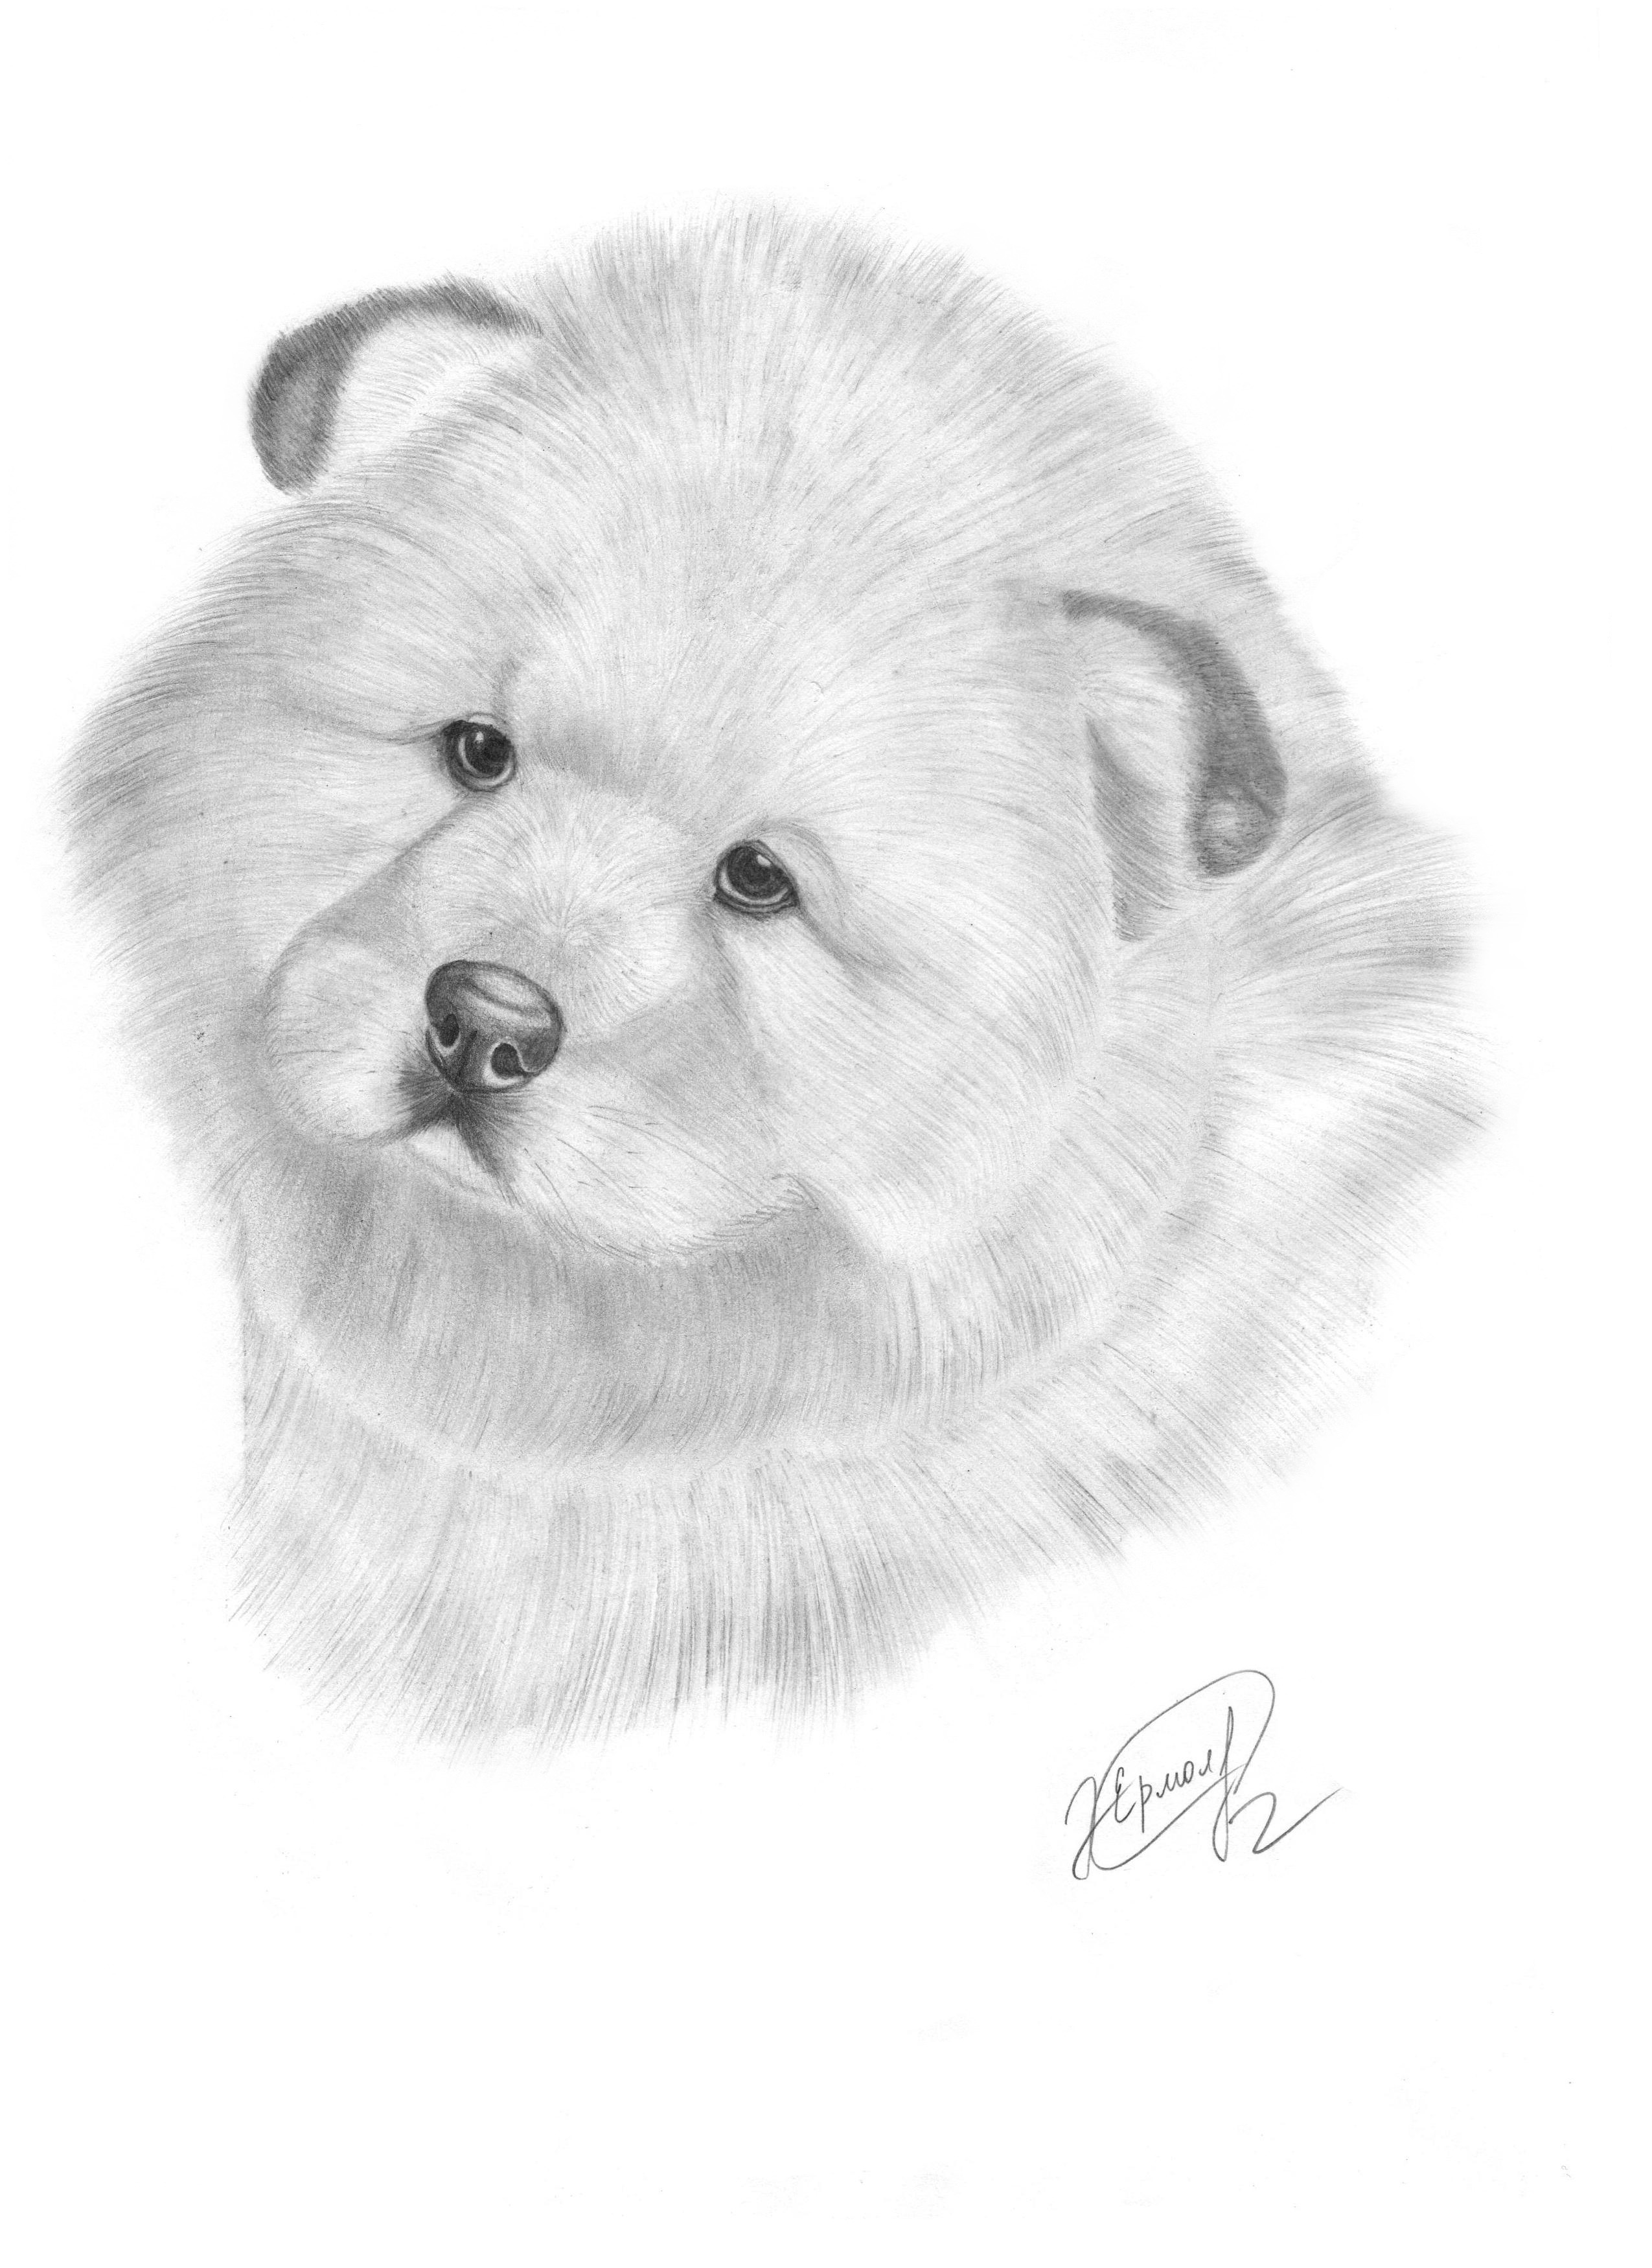 Puppy chow chow by evelinapoodle on deviantart